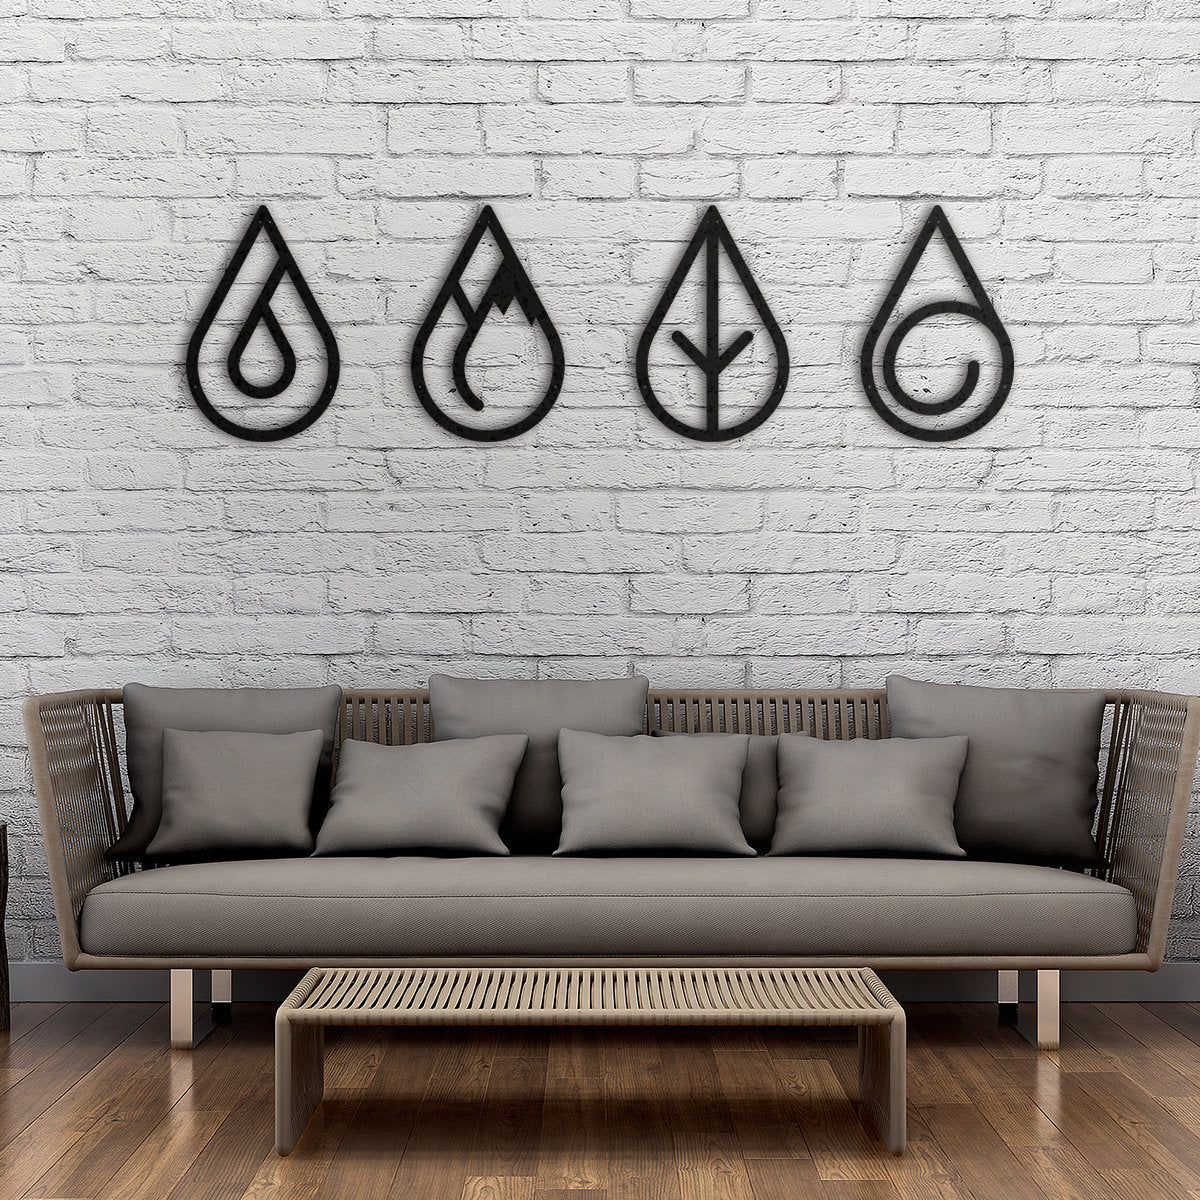 4 Elements - Metal Wall Art